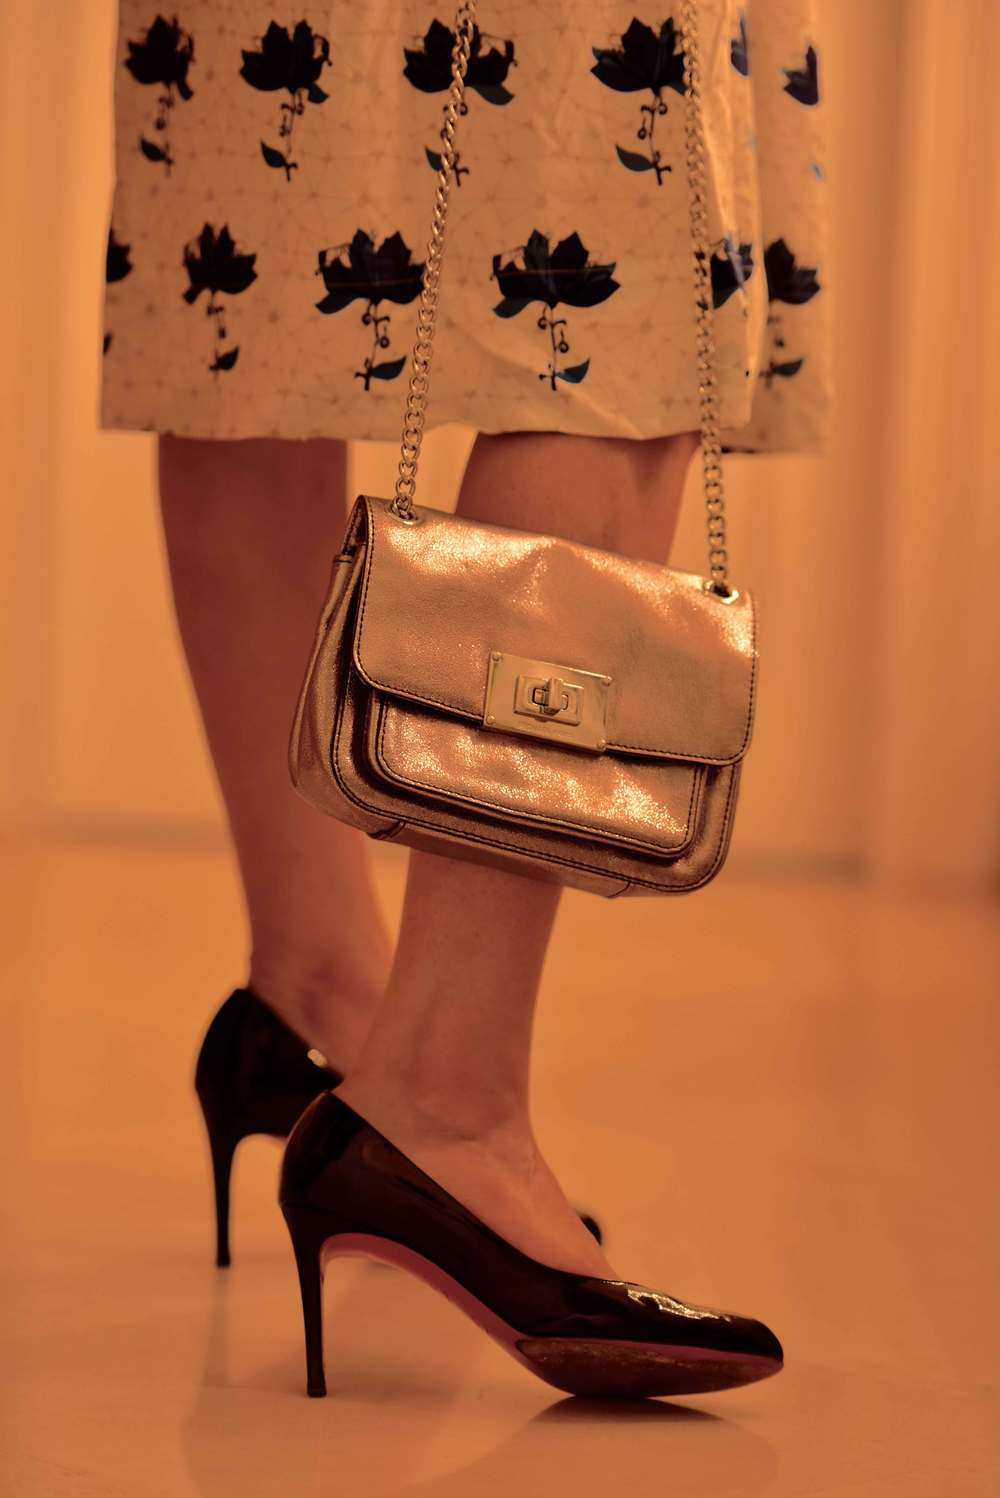 Ready for the red carpet! Bag: Michael Kors, Shoes: Loubitons. Image©gunjanvirk